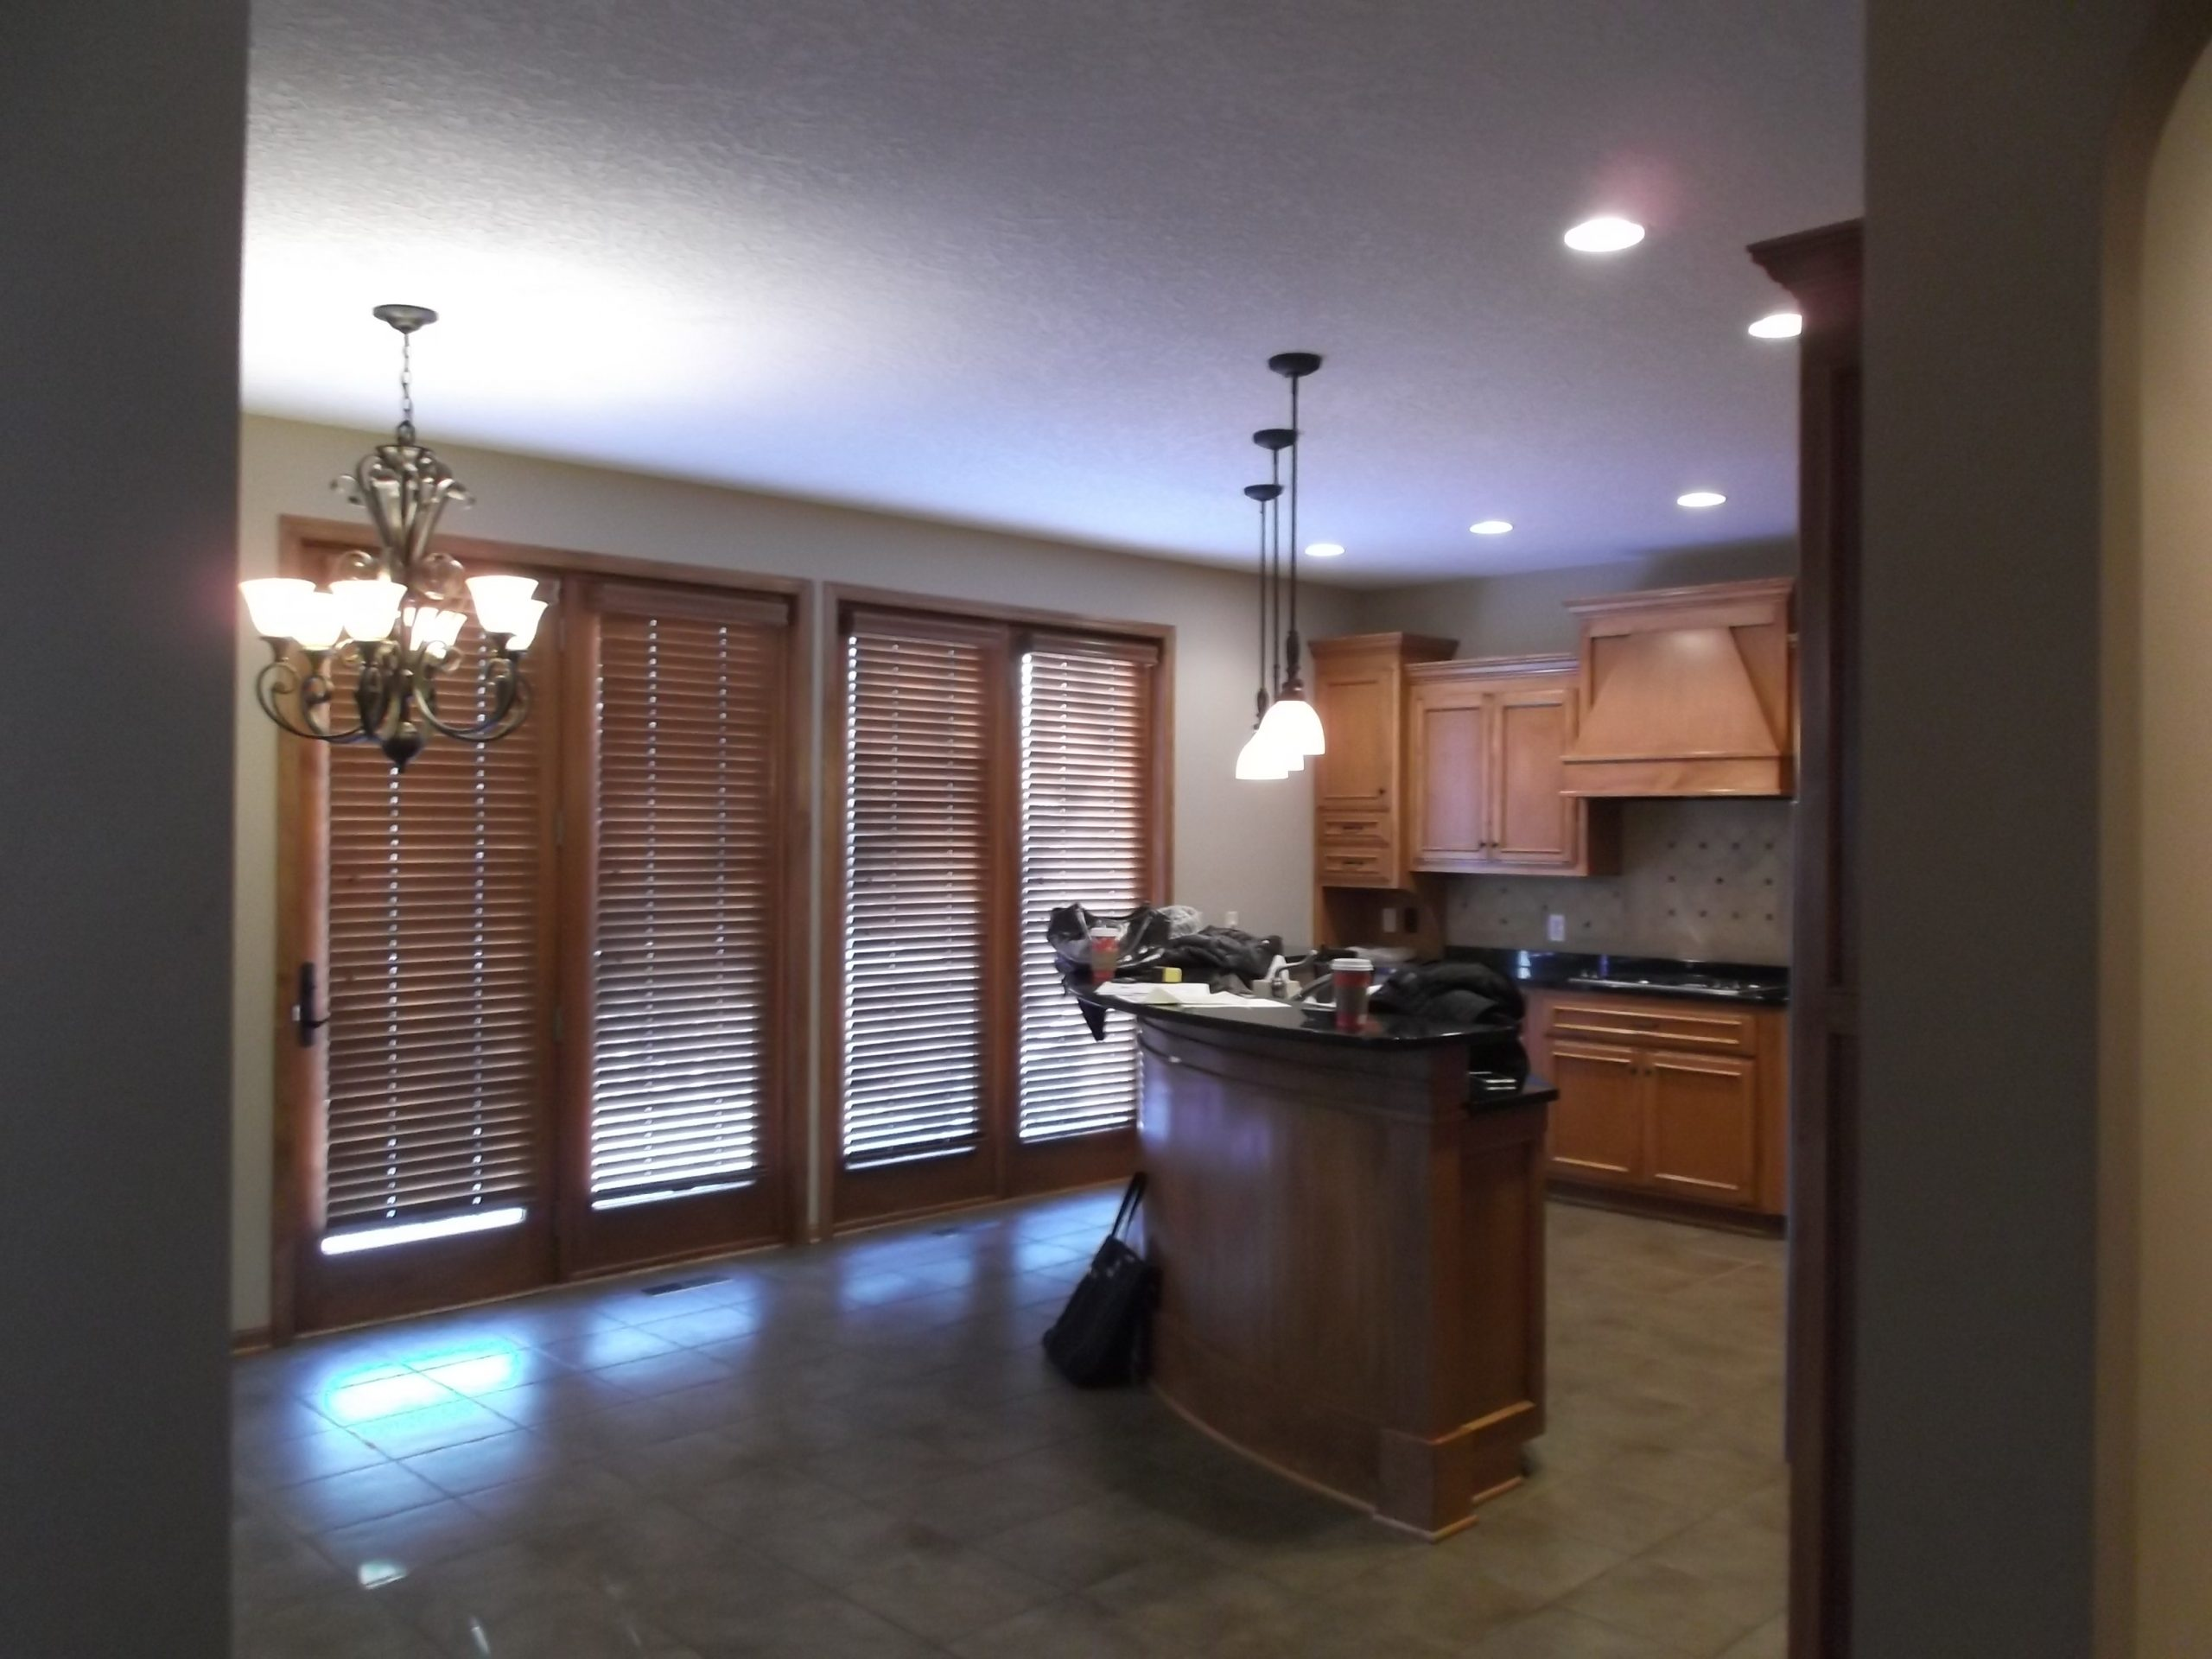 The doors to the existing deck were covered with heavy blinds, closing the space off and blocking the light.